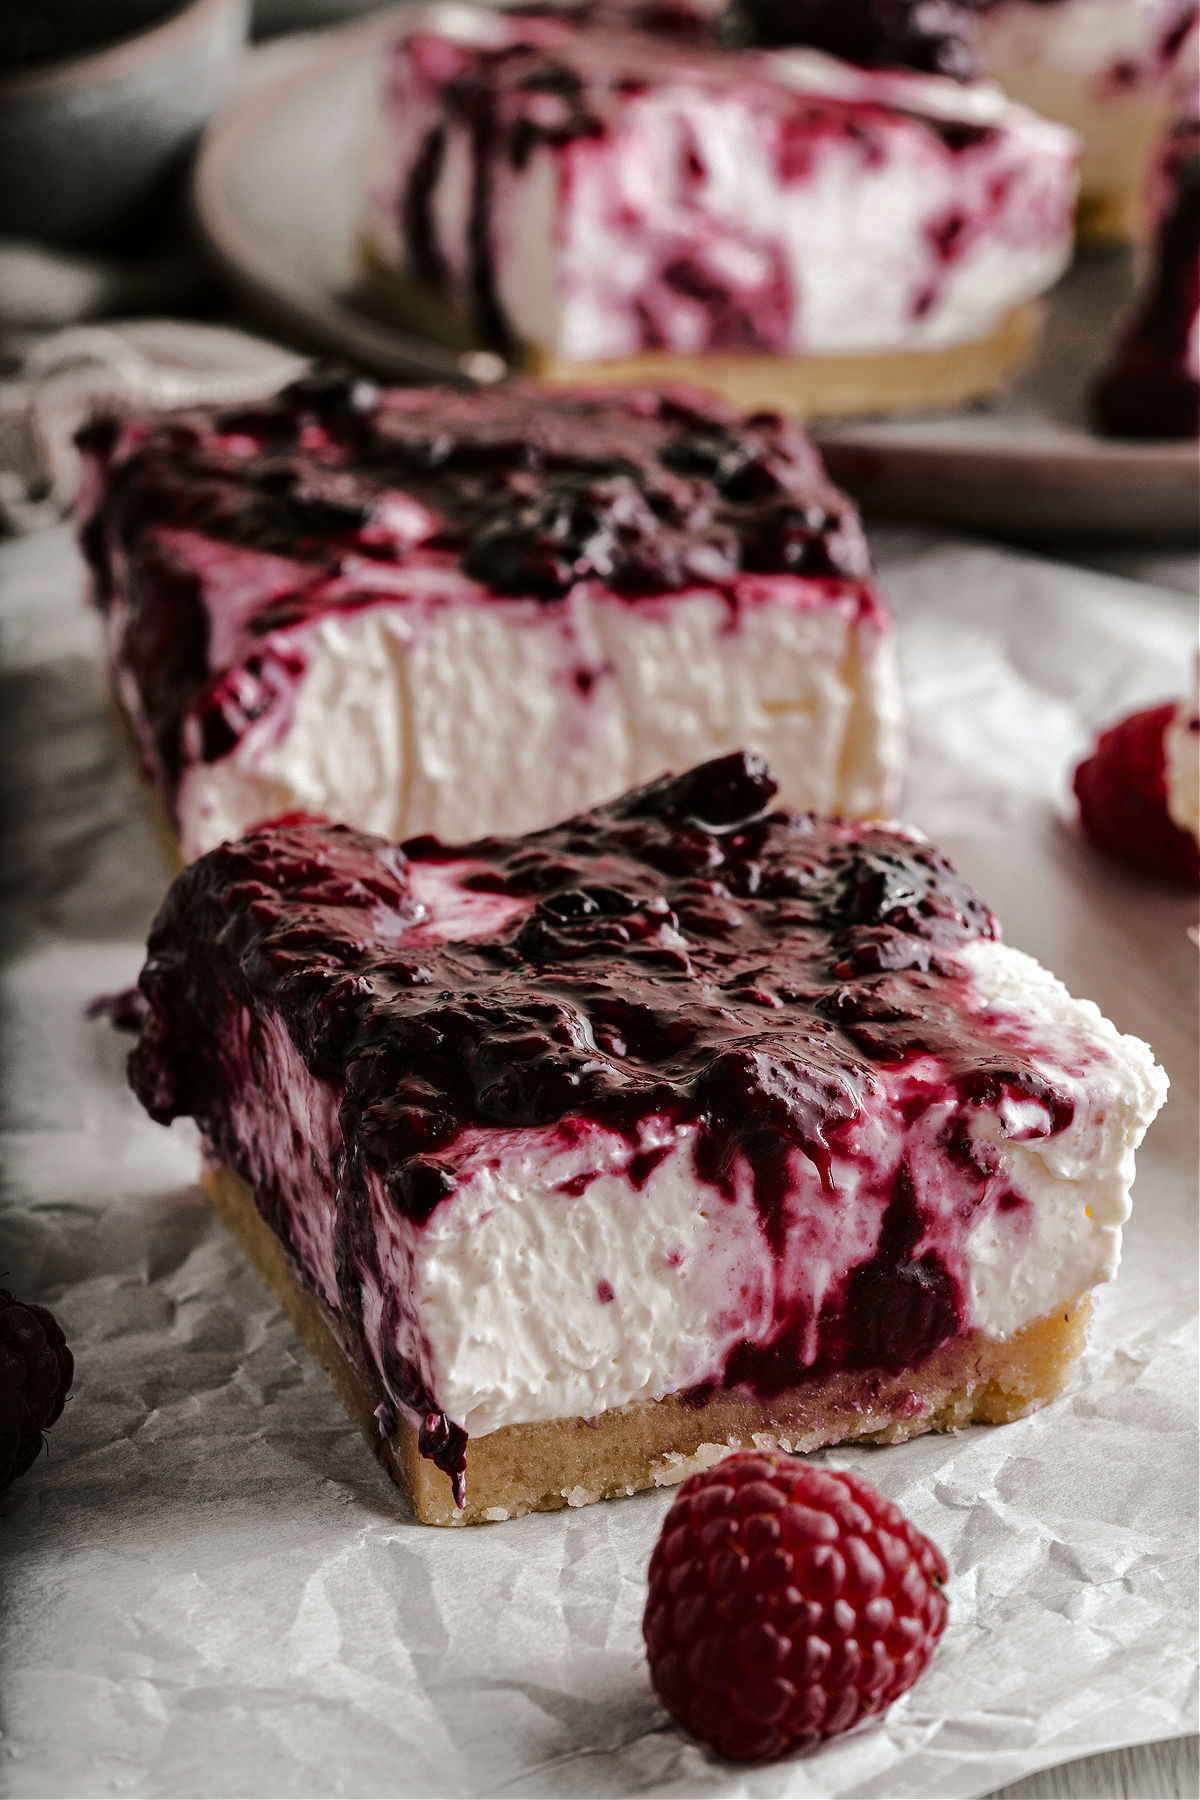 No bake cheesecake bars with a berry topping on parchment paper.